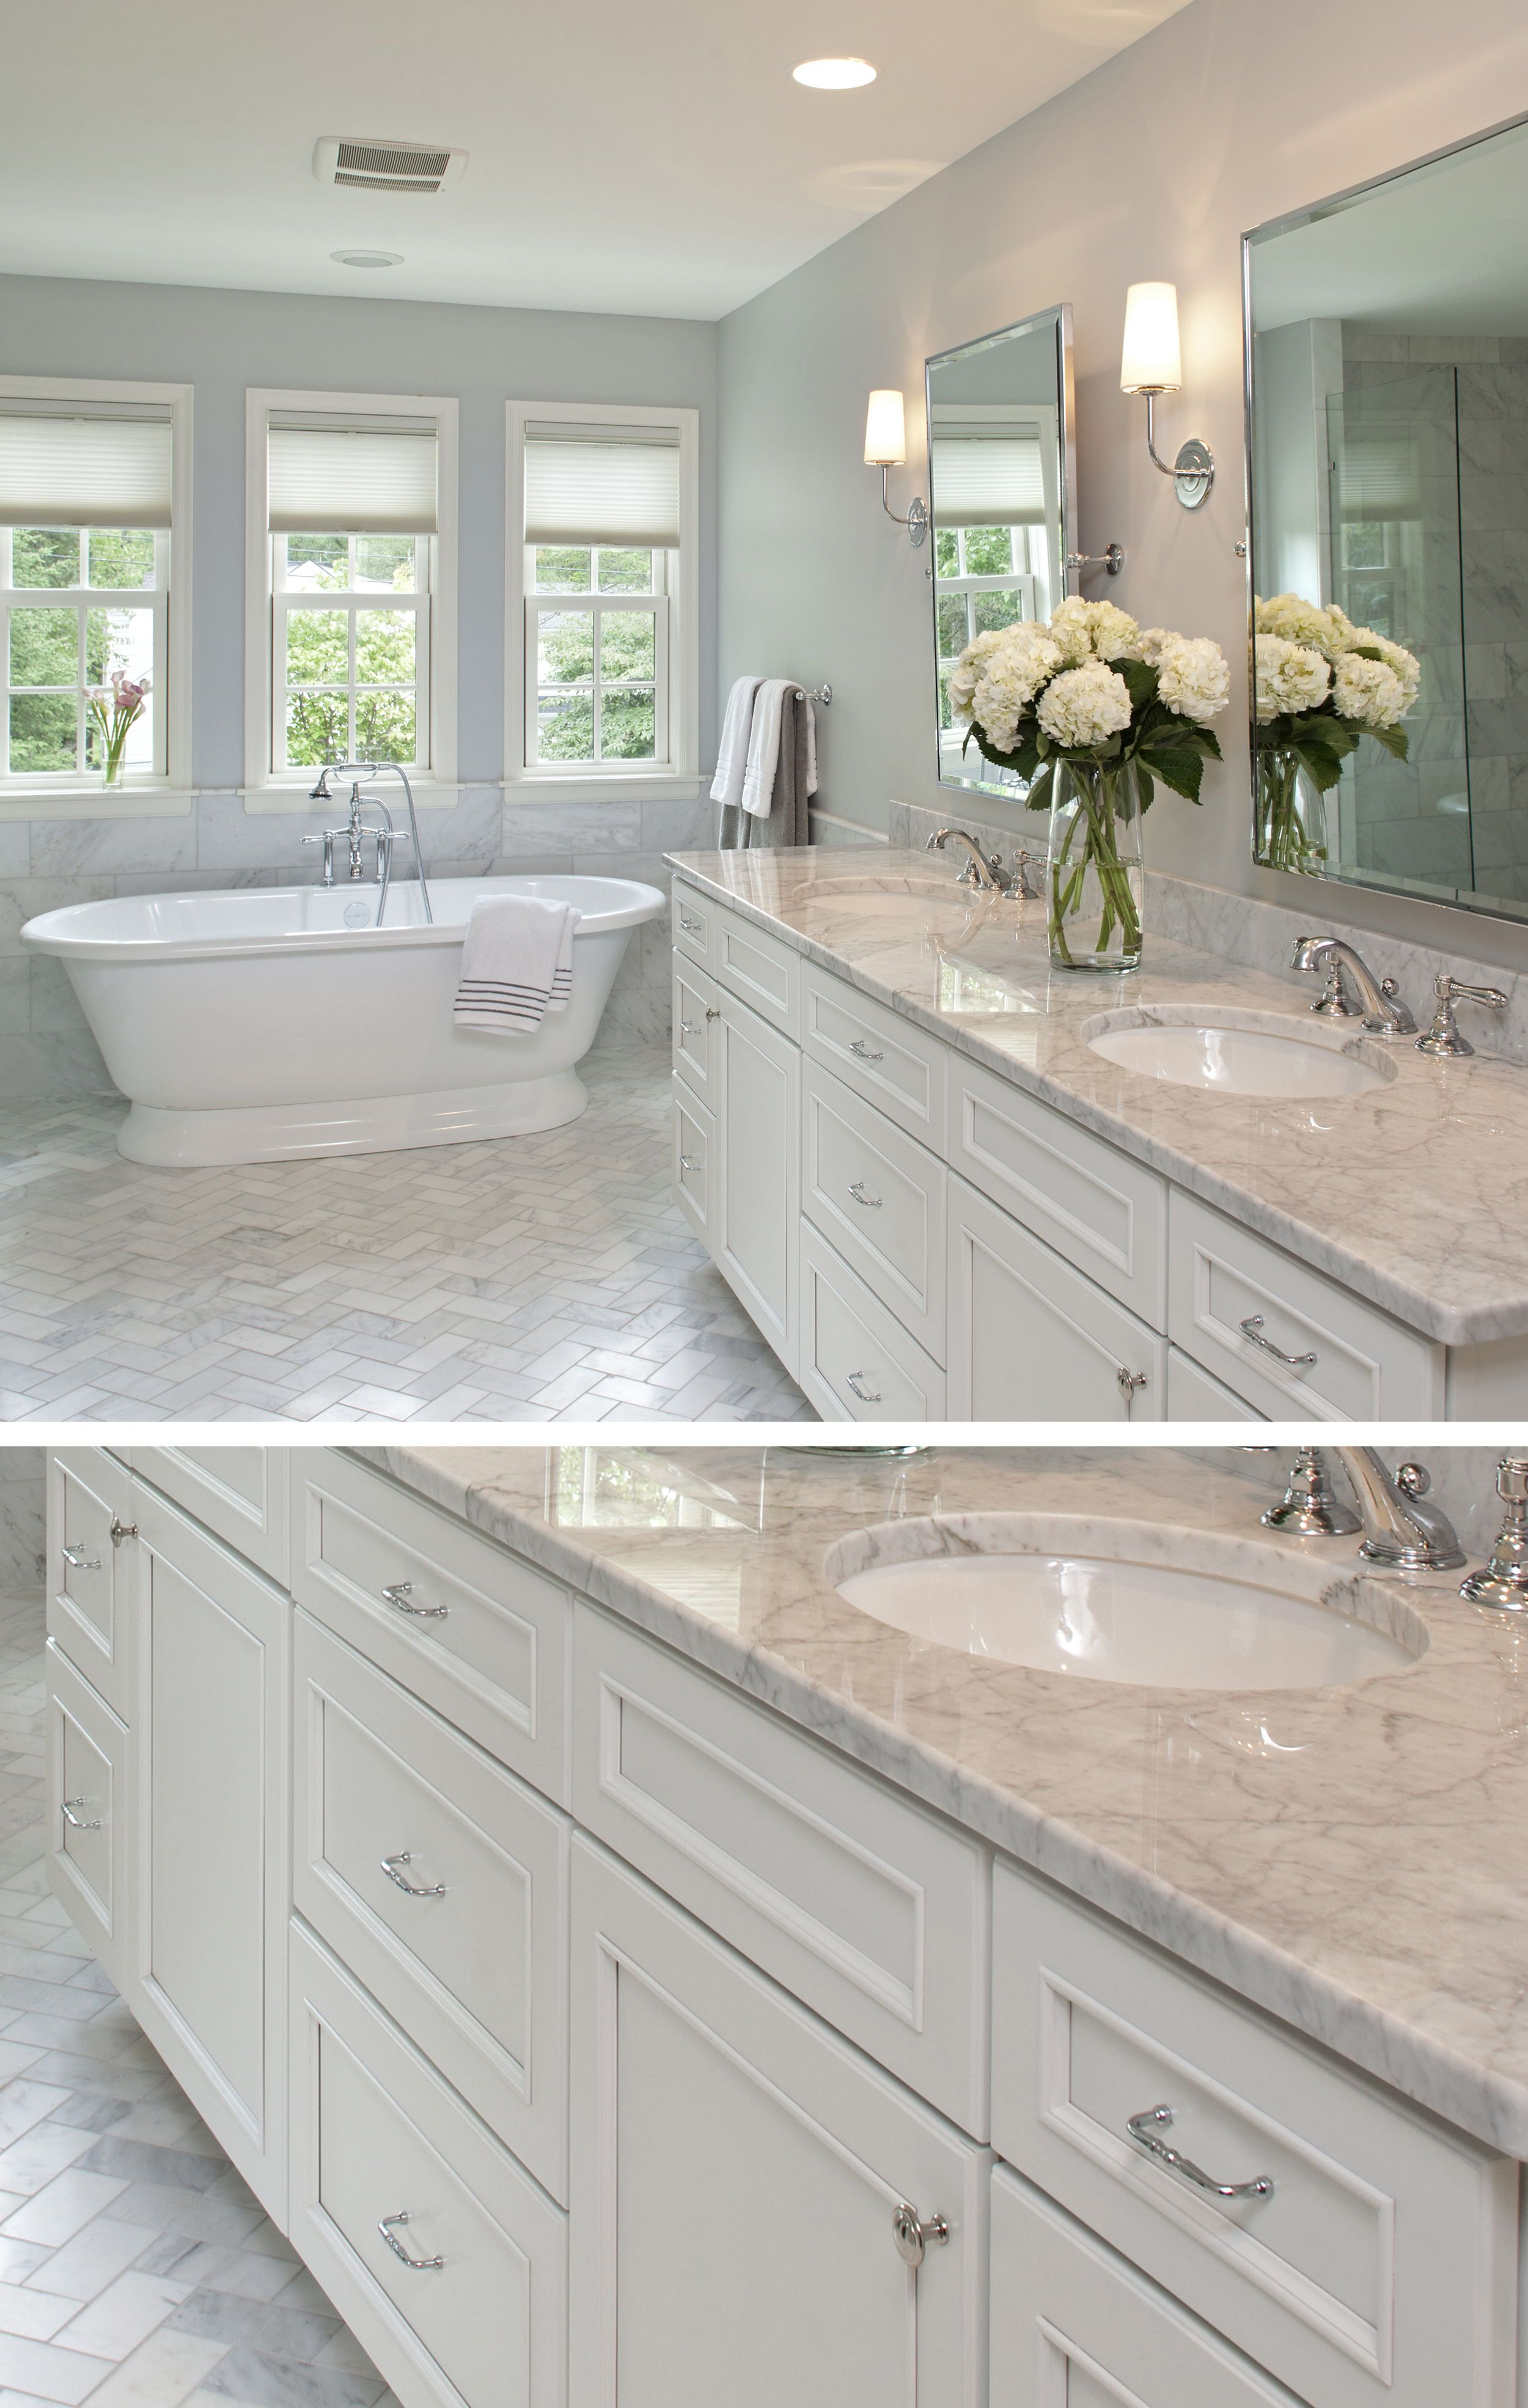 White On White Masterbath Design This New Construction Home By Cre Construction Features A Be Master Bathroom Design Bathroom Vanity Designs Master Bathroom